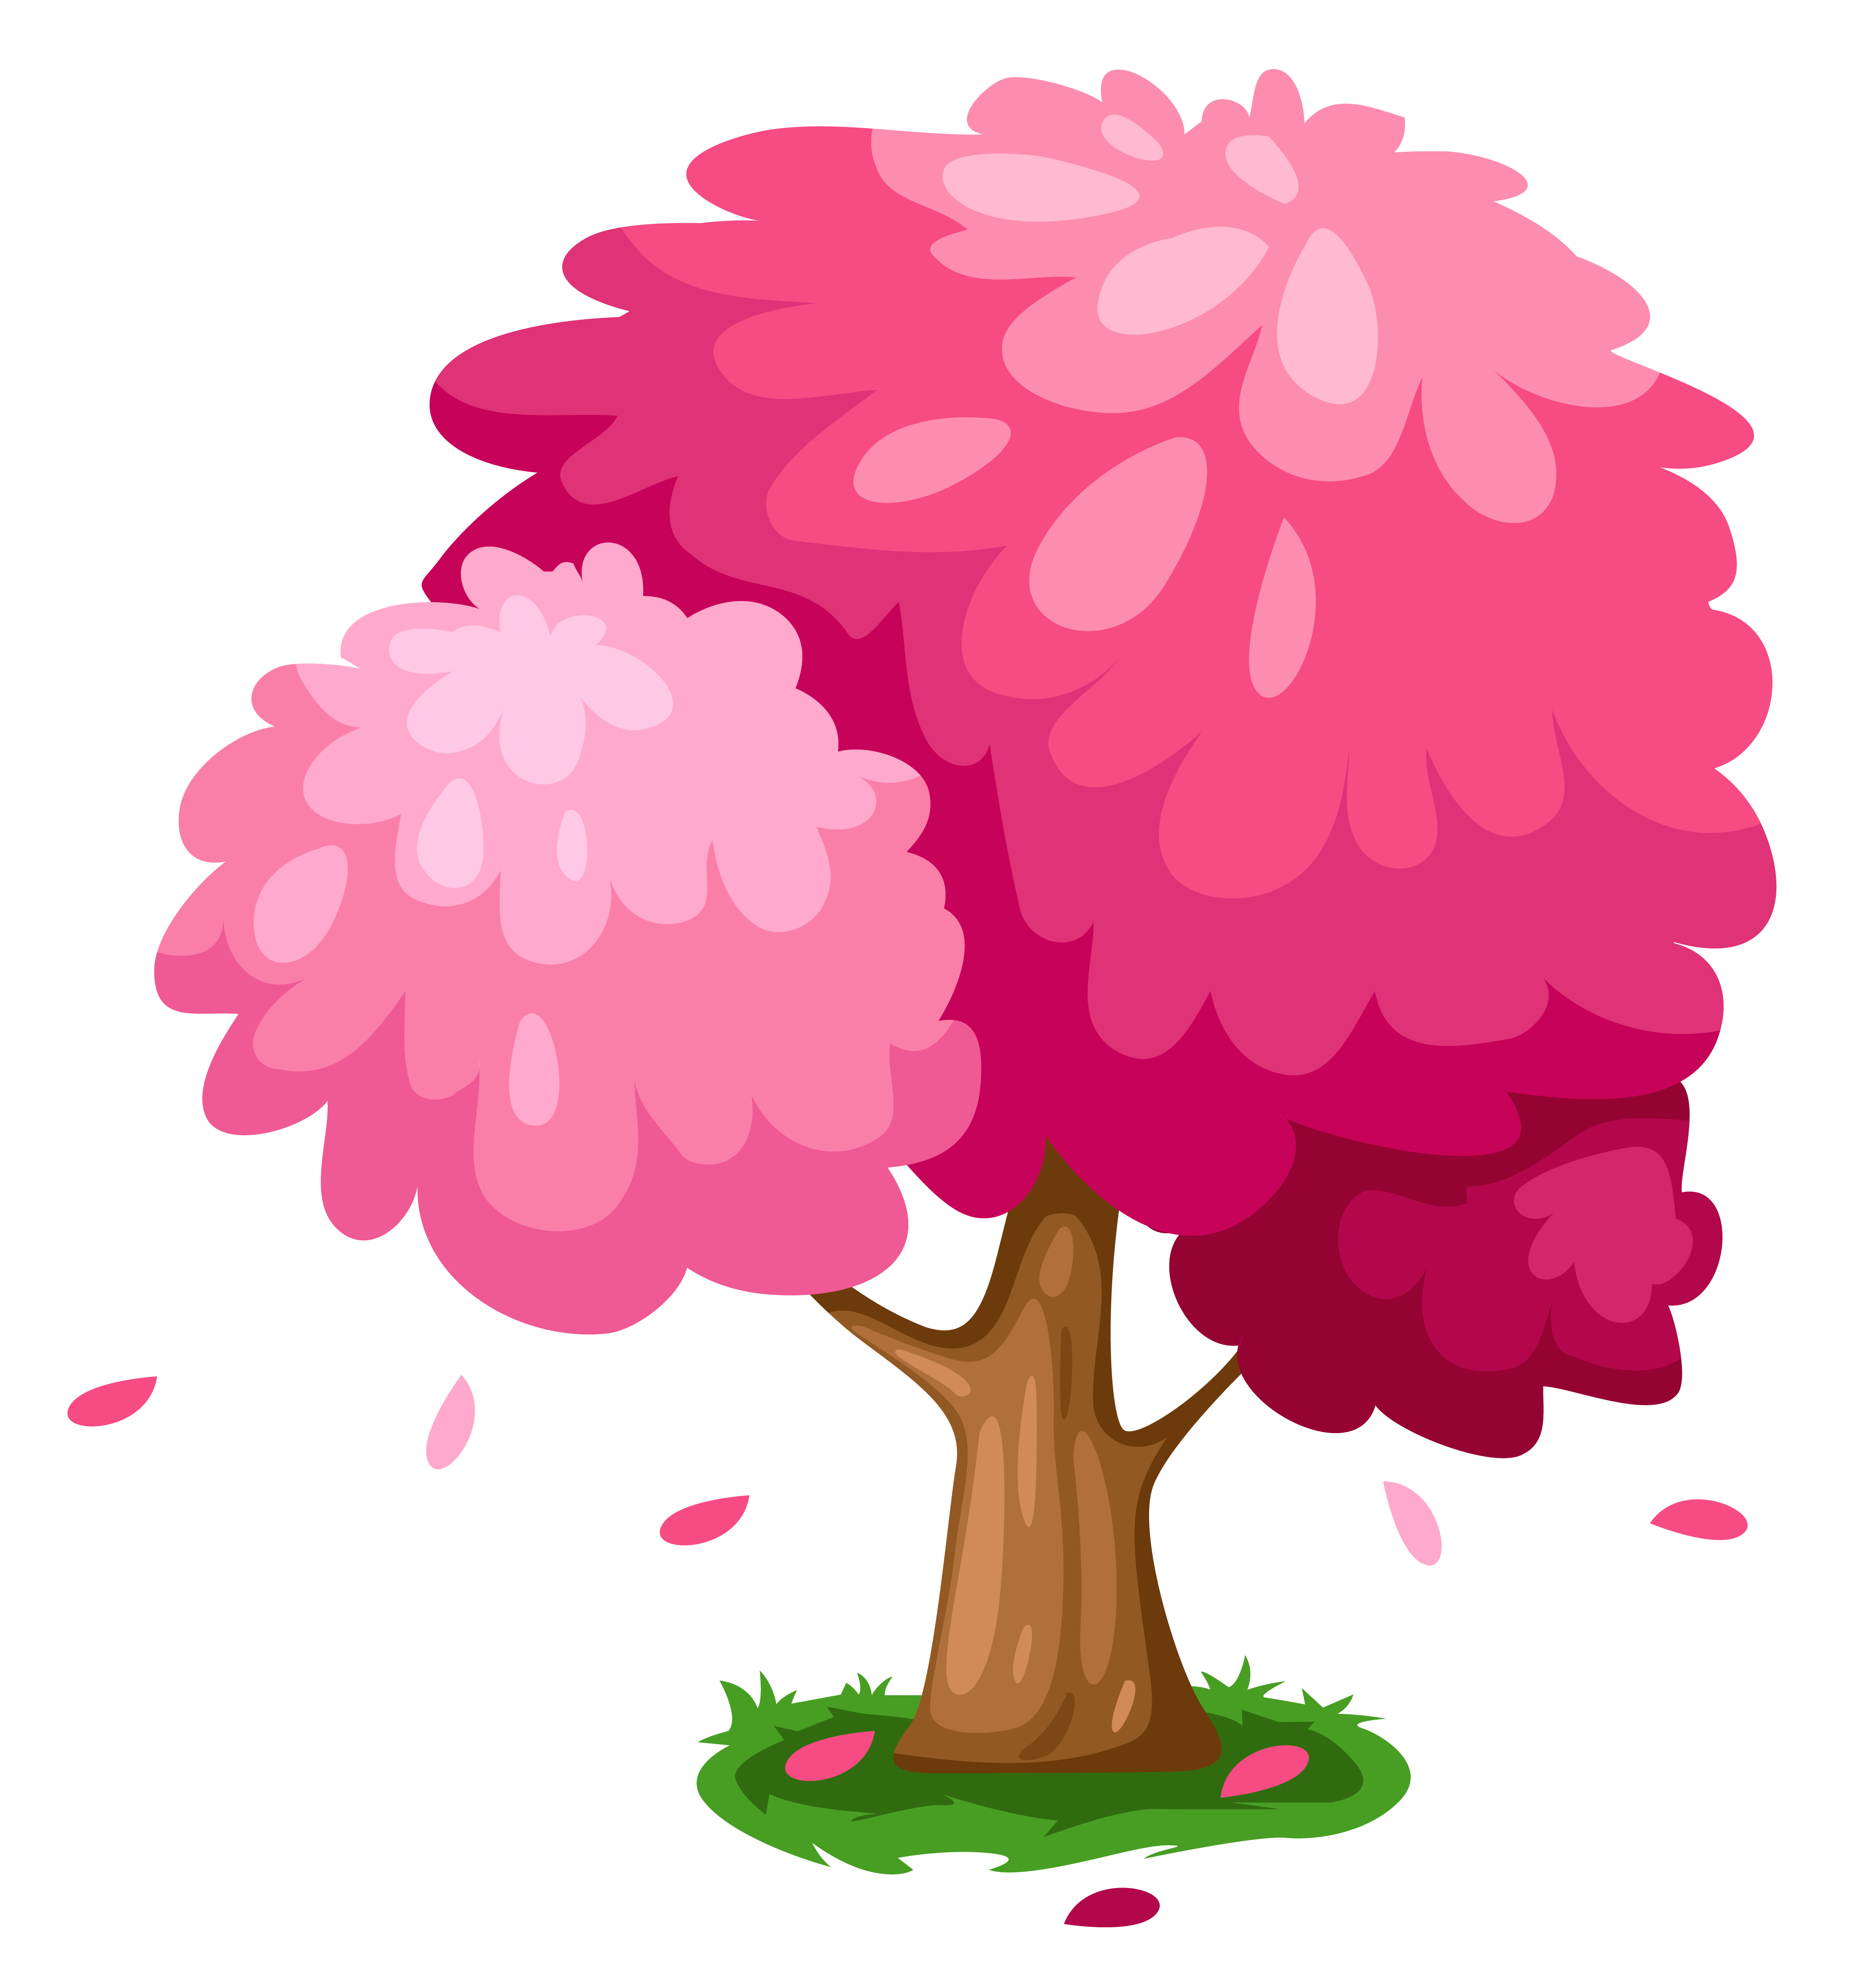 Summer Tree Clipart | Clipart Panda - Free Clipart Images